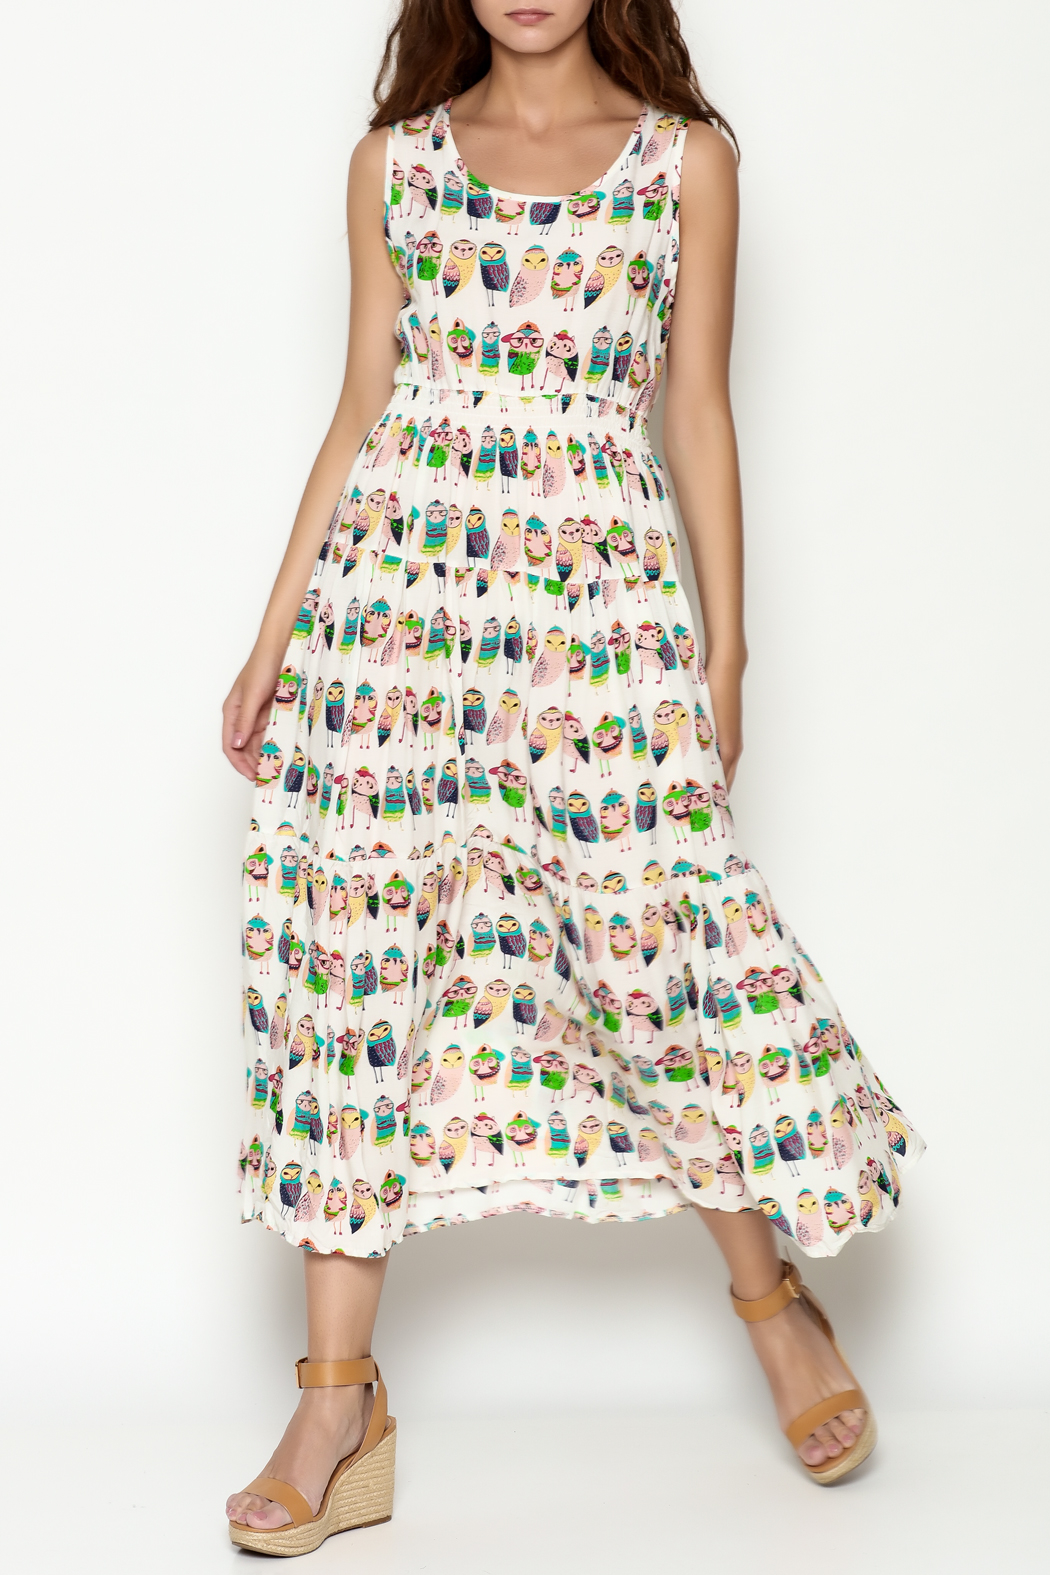 THINK CLOSET Colorful Owl Dress - Front Cropped Image